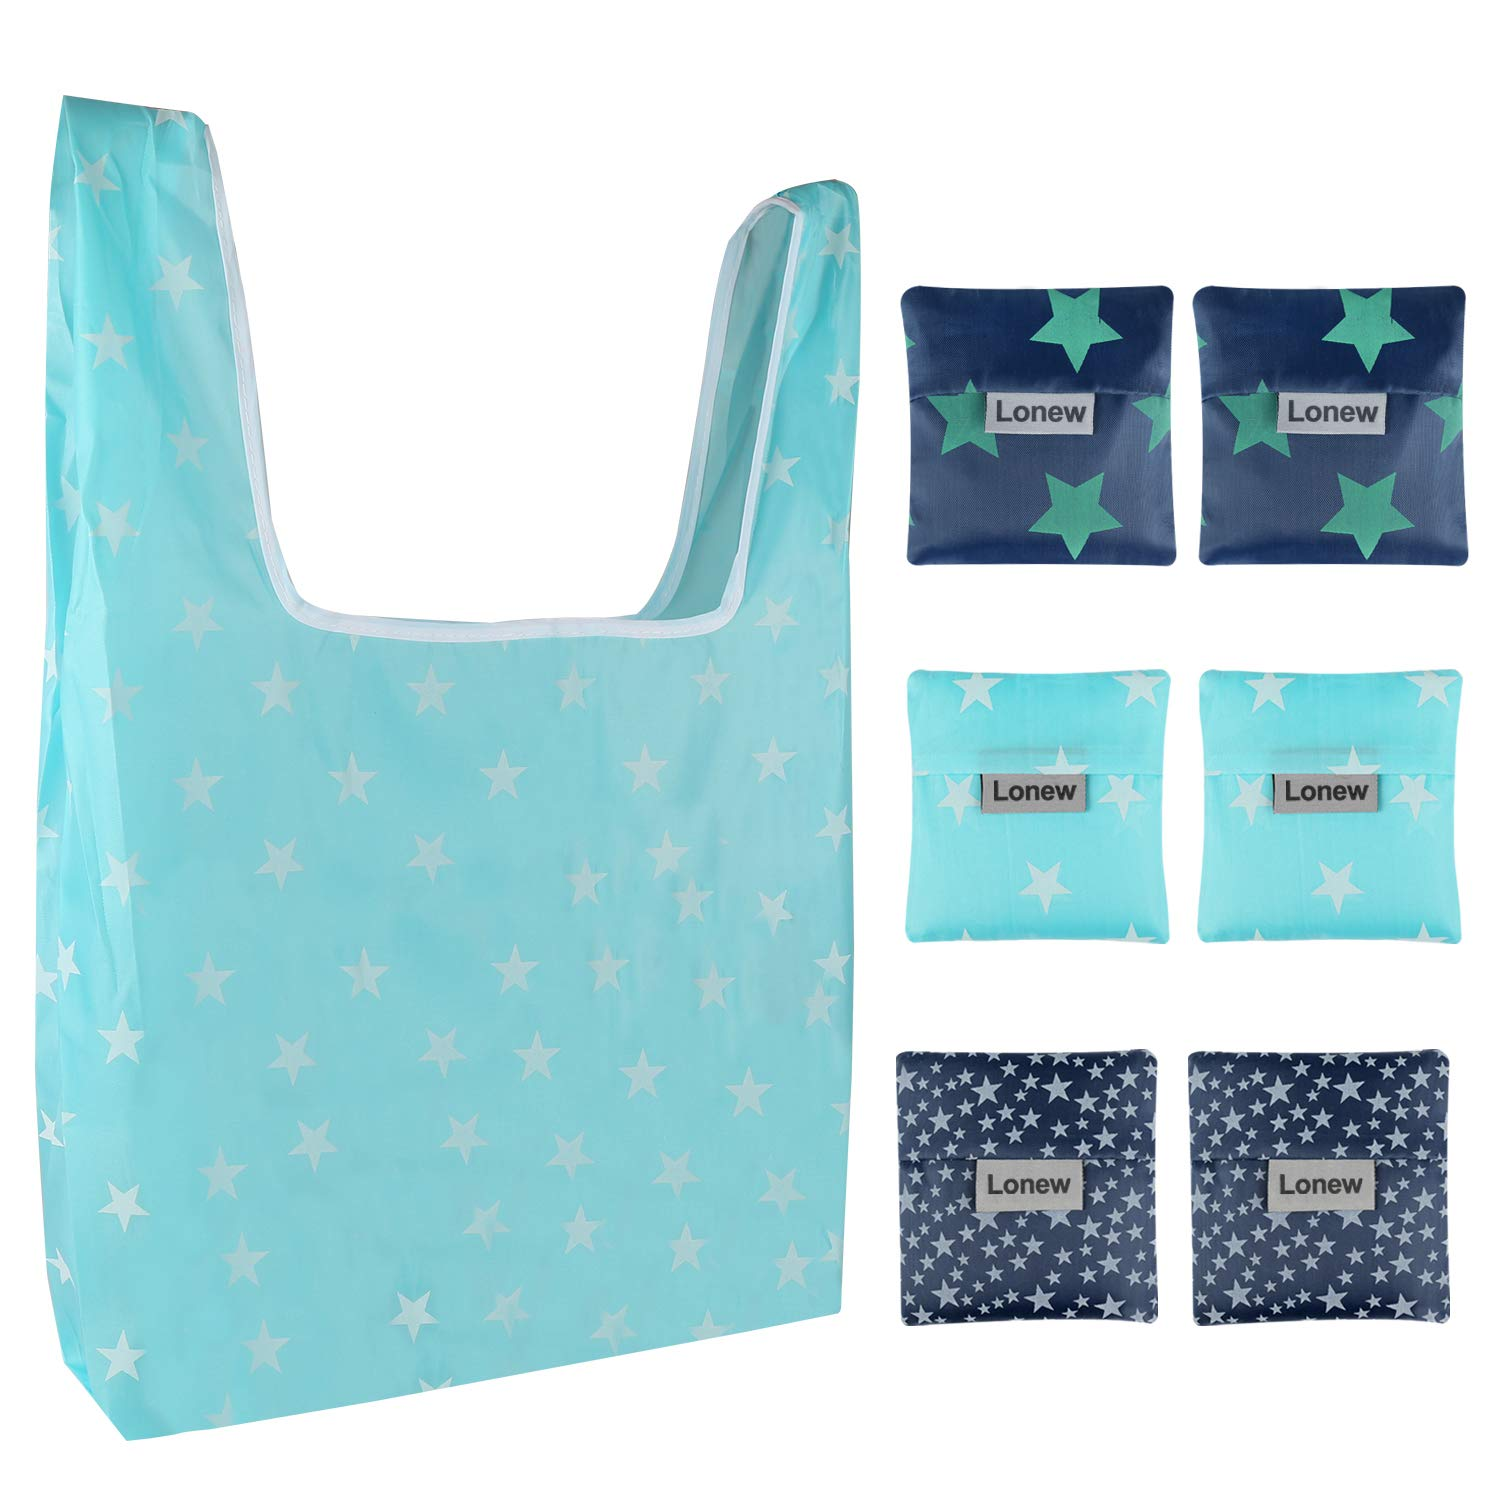 Lonew Folding Reusable Grocery Shopping Bags (6 Pack) - Waterproof Lightweight Large Capacity Portable Tote Bag Environmentally, Durable, Can Withstand Heavy Goods, Machine Washable